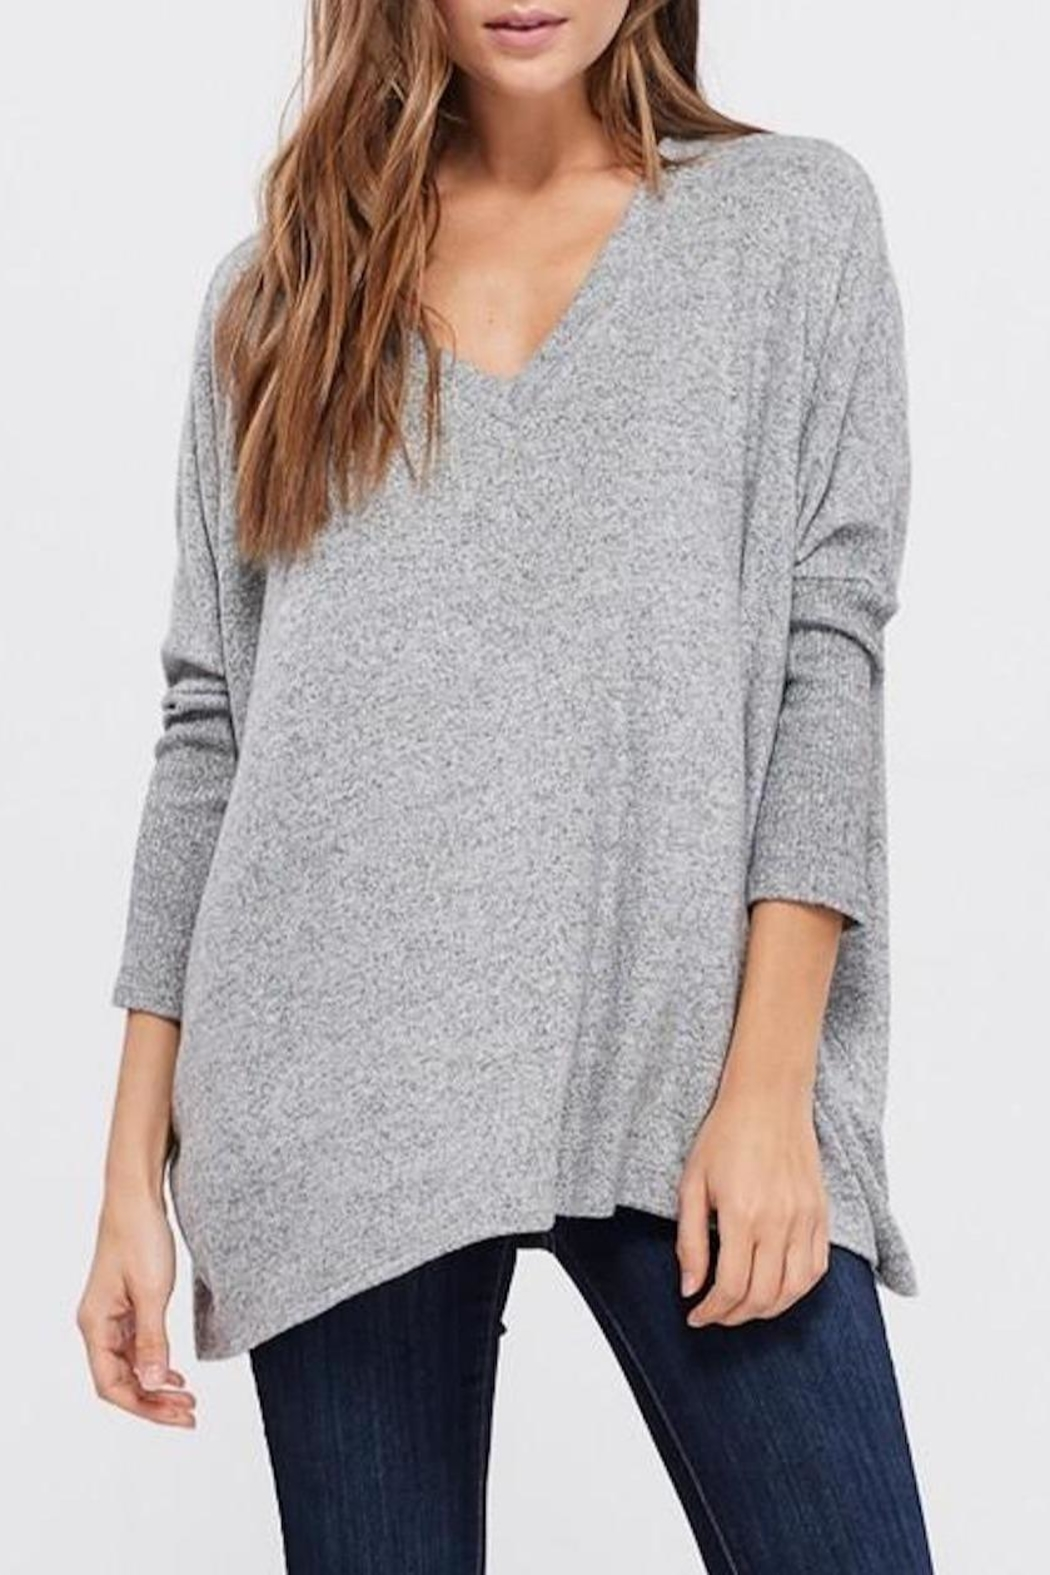 Cherish Dolman-Sleeve Knit Top - Front Cropped Image